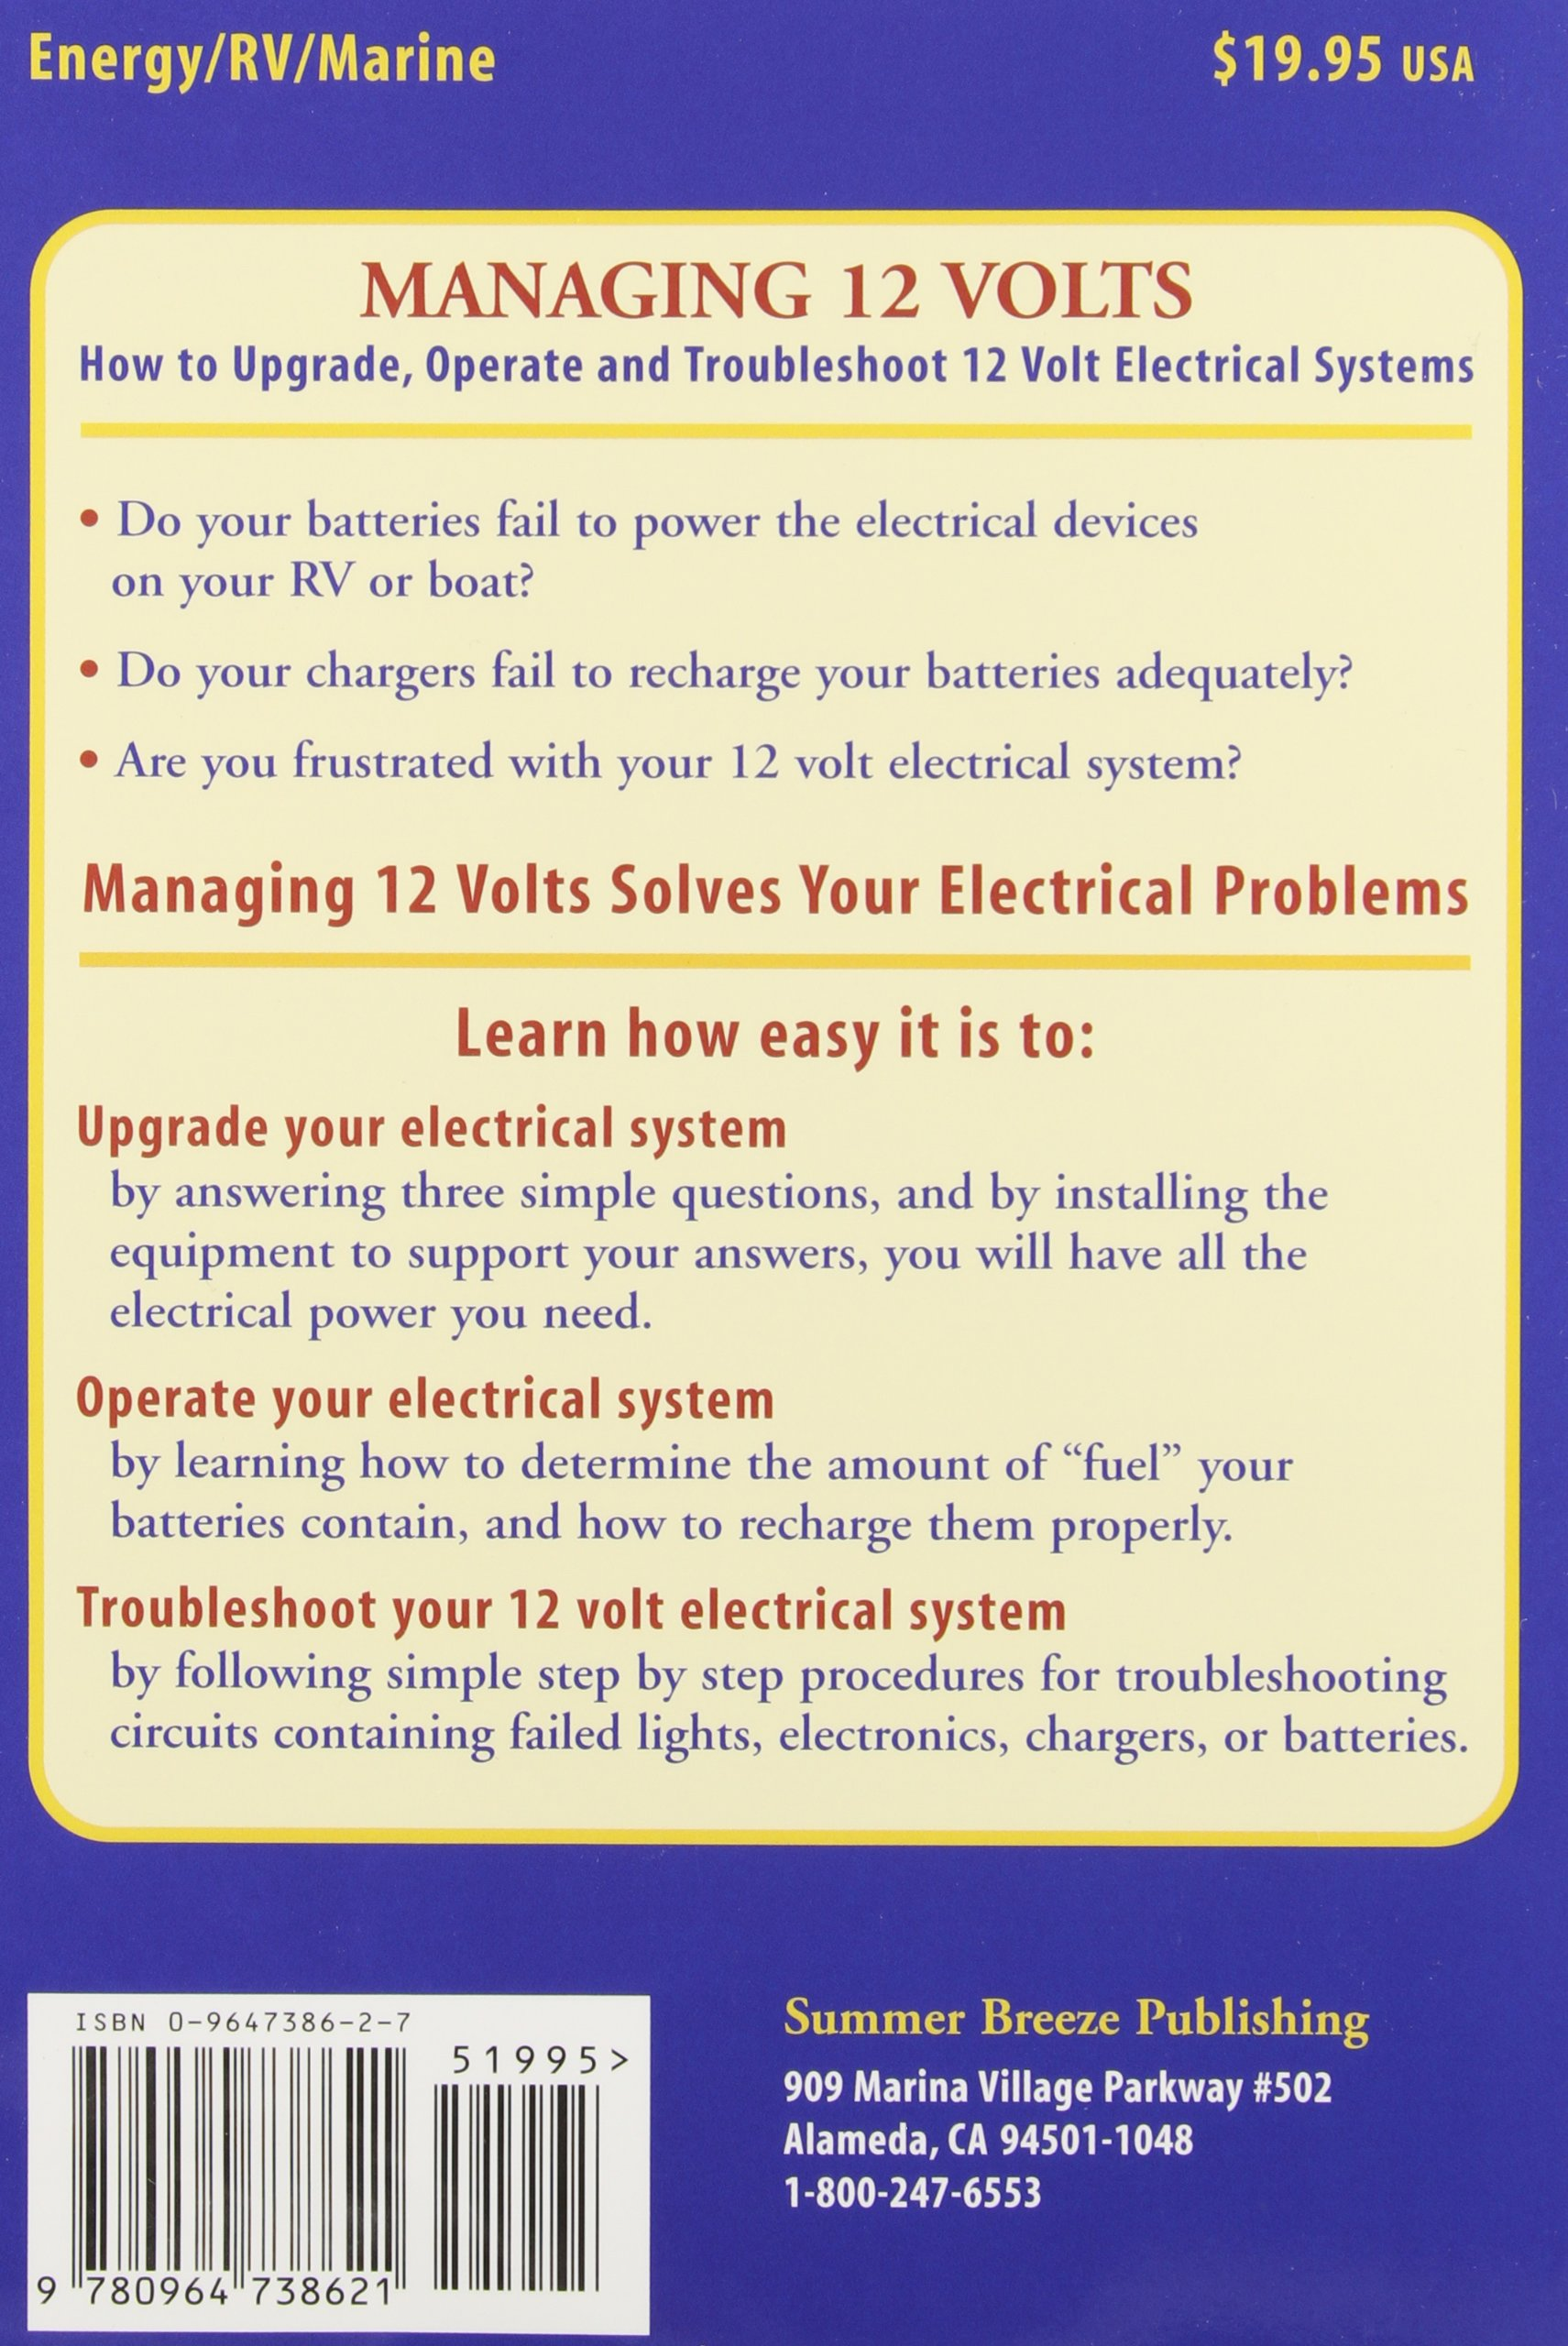 Managing 12 Volts How To Upgrade Operate And Troubleshoot Volt Upgrading My Rv Battery Bank System Electrical Systems Harold Barre 9780964738621 Books